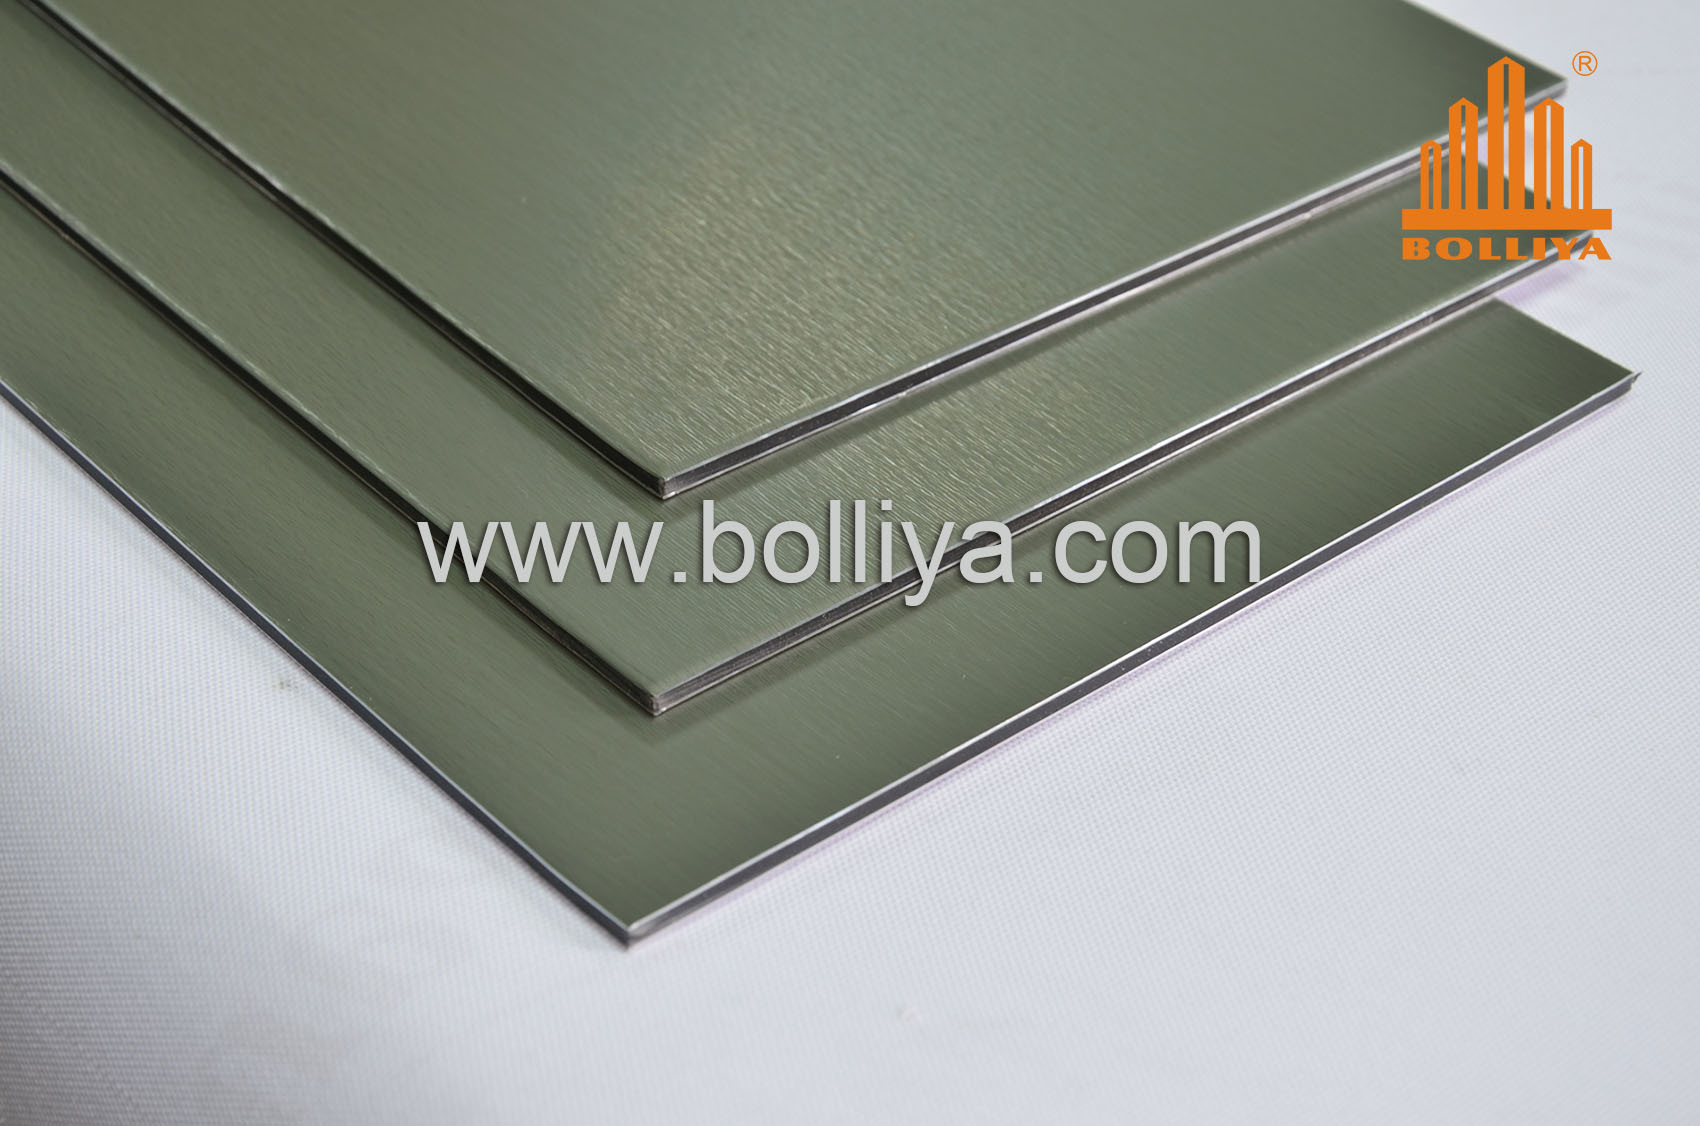 Titaminum Zinc Composite Innovative Wall Decorating M, Aterials Tz-002